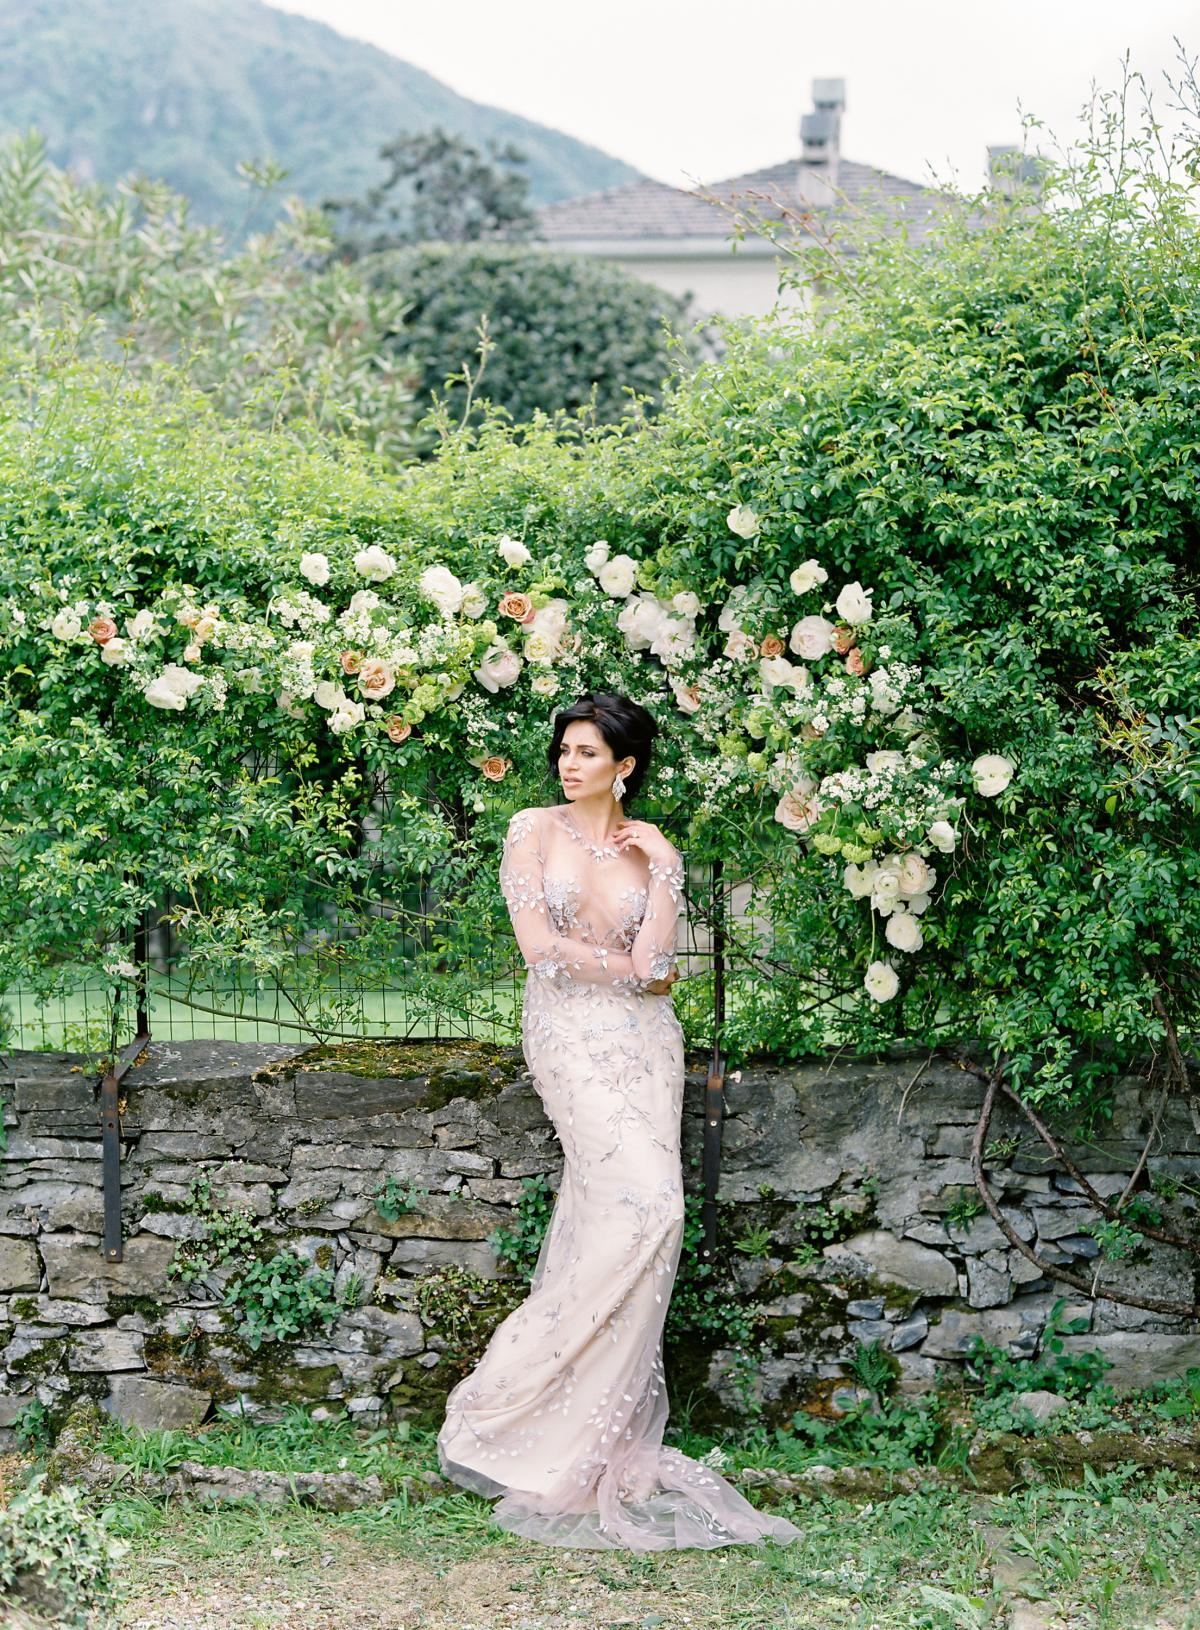 Lake Como Villa Del Balbianello Wedding Omalley Photographers 0037